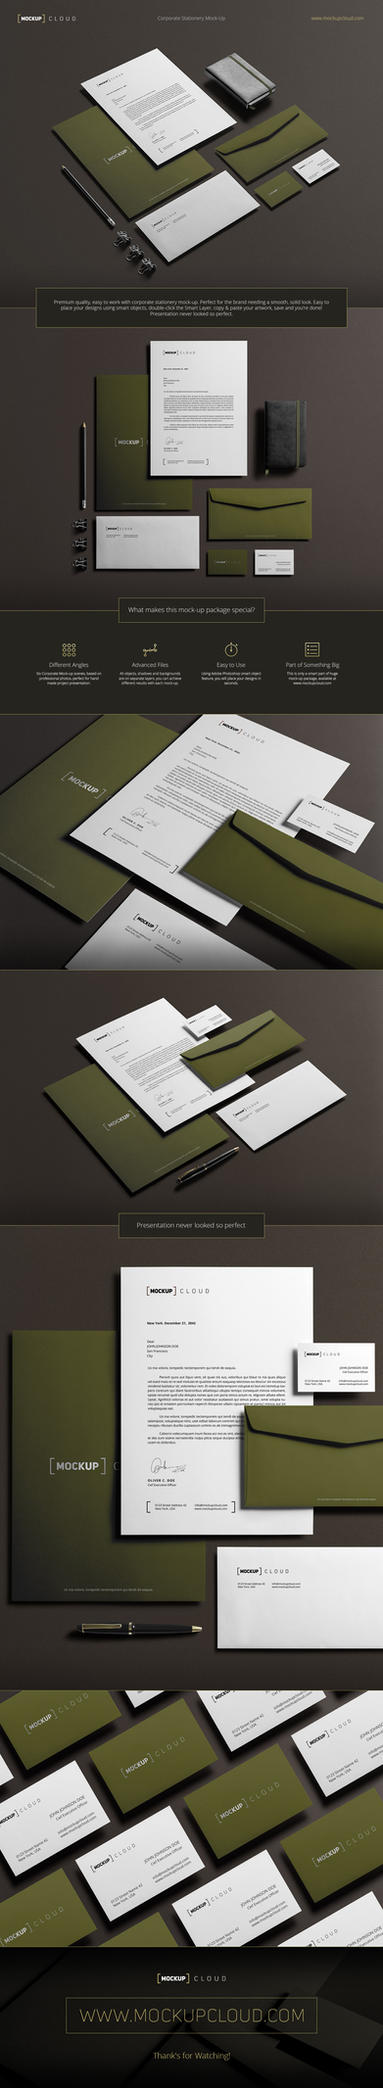 Corporate Stationery Mock-Up by Genetic96